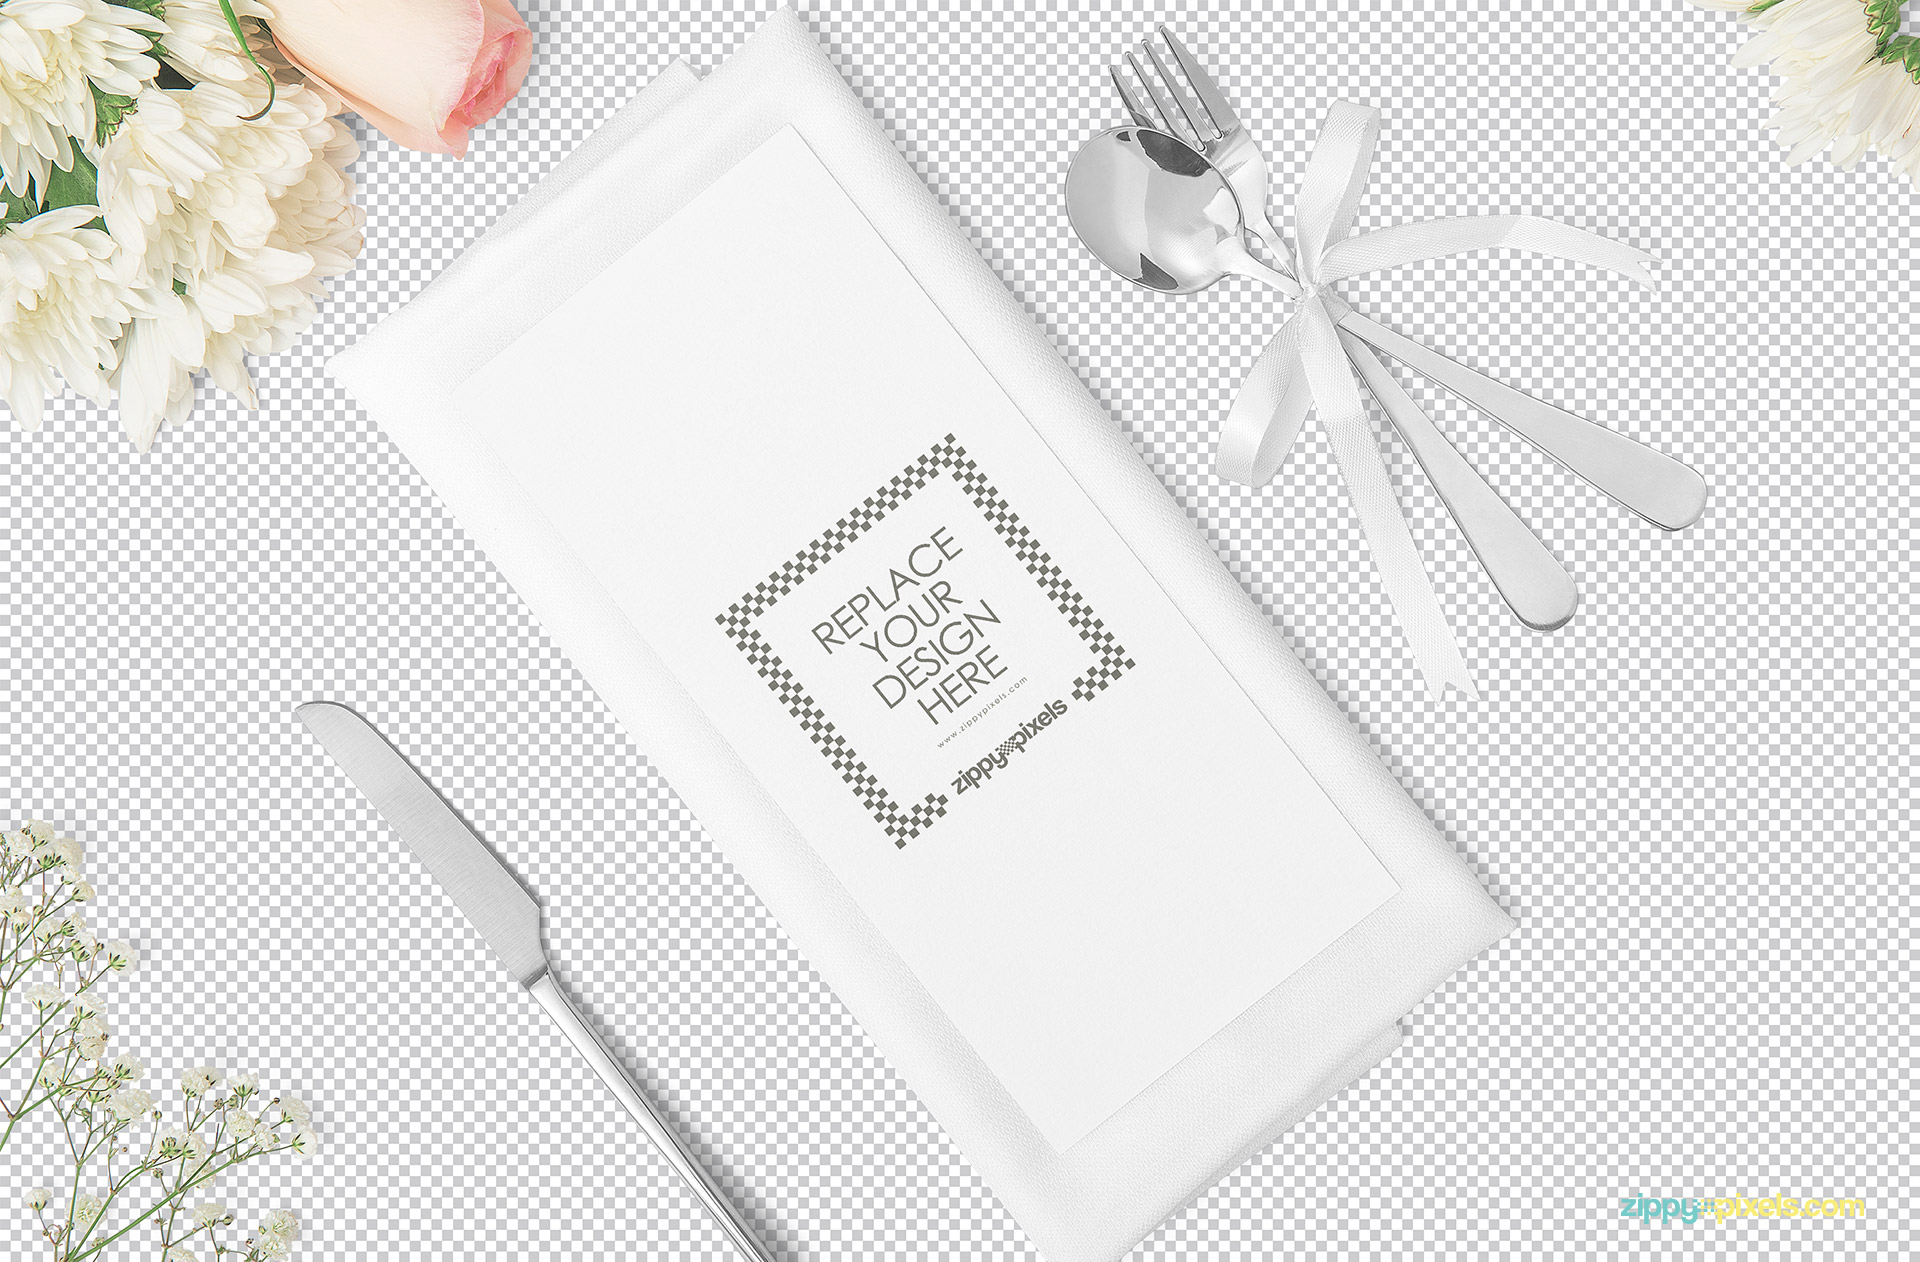 Plain menu card mockup scene showing replaceable design option.